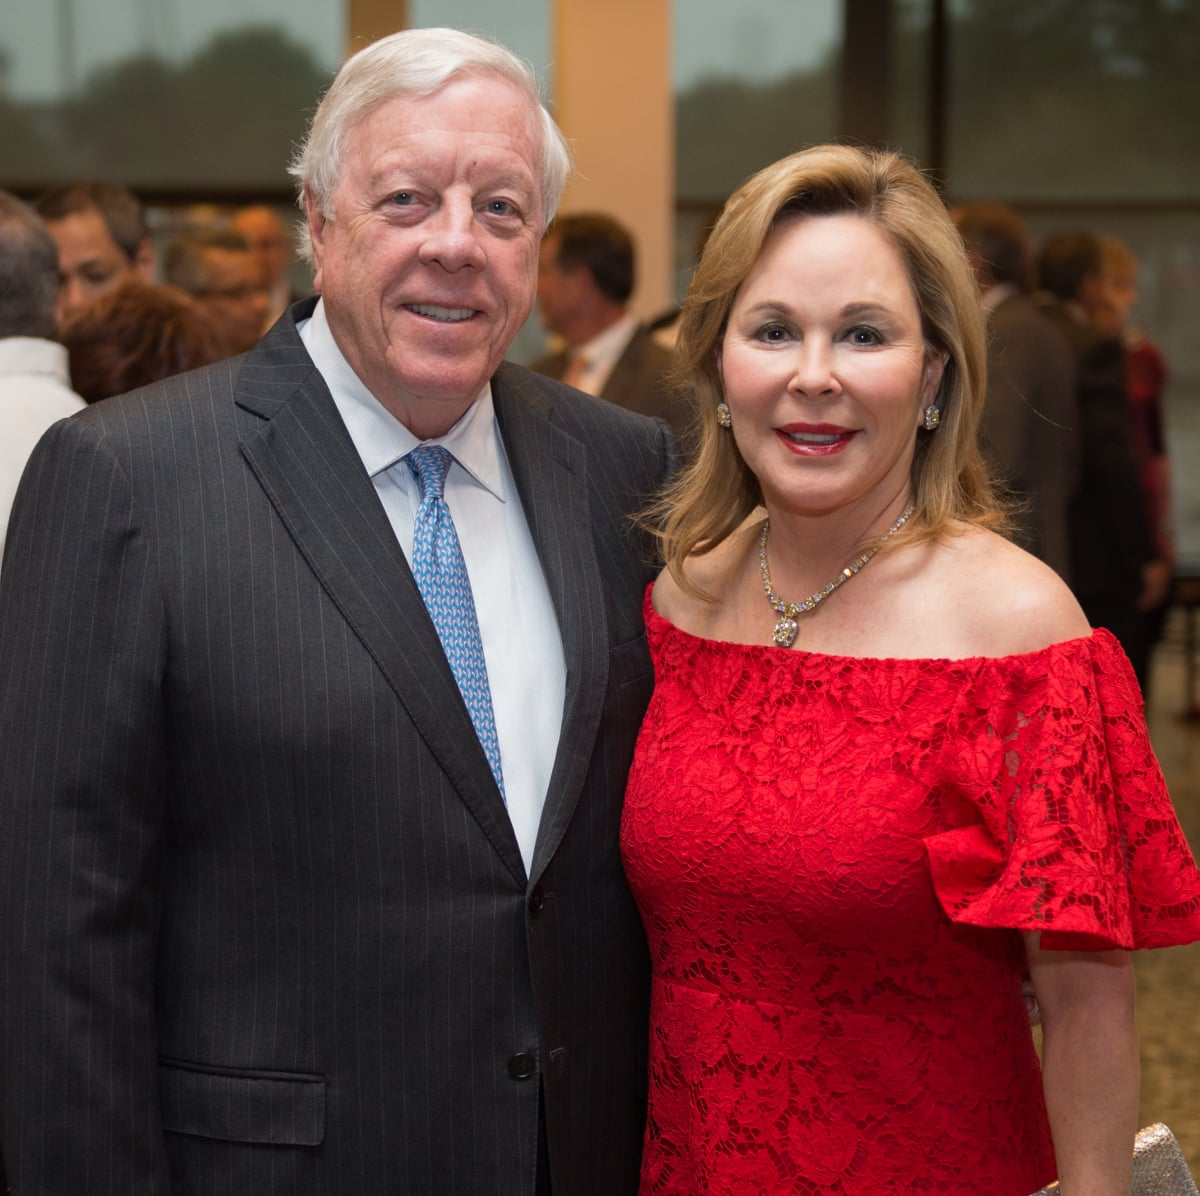 Rich and Nancy Kinder at MFAH Mexican Modernism dinner